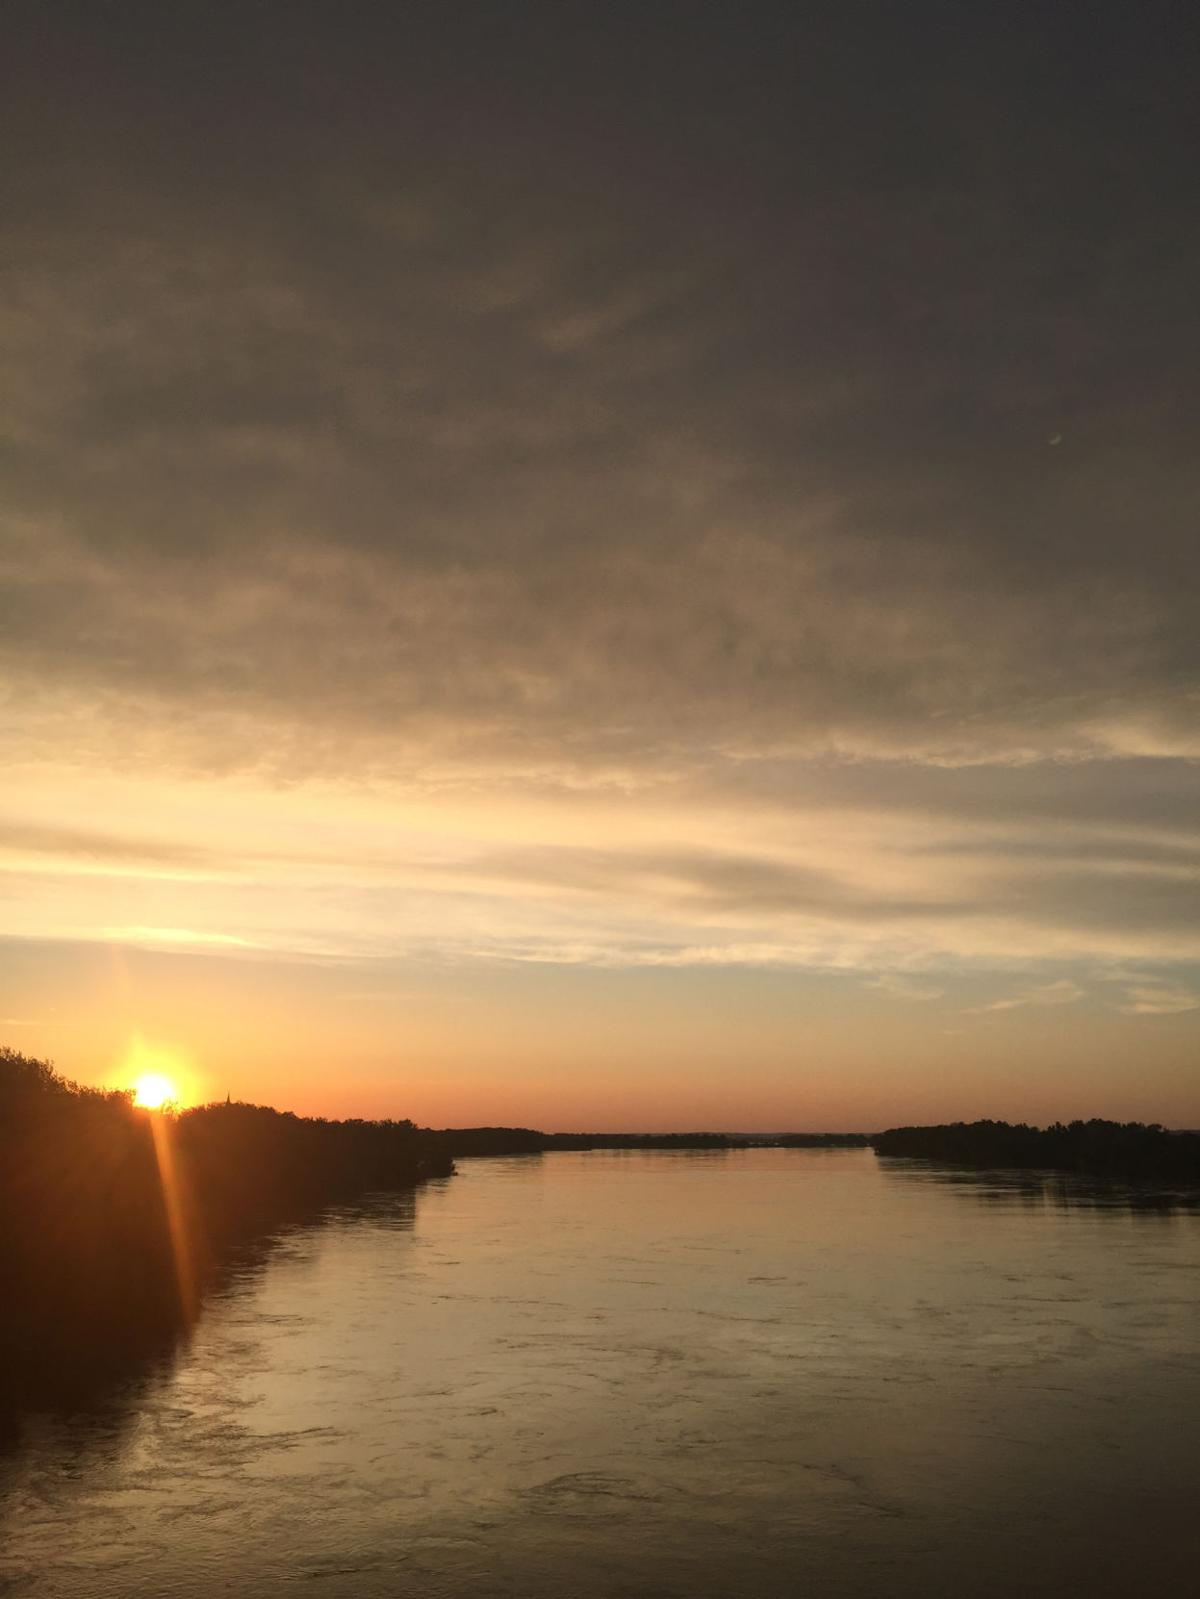 Sunset from Mo River Bridge